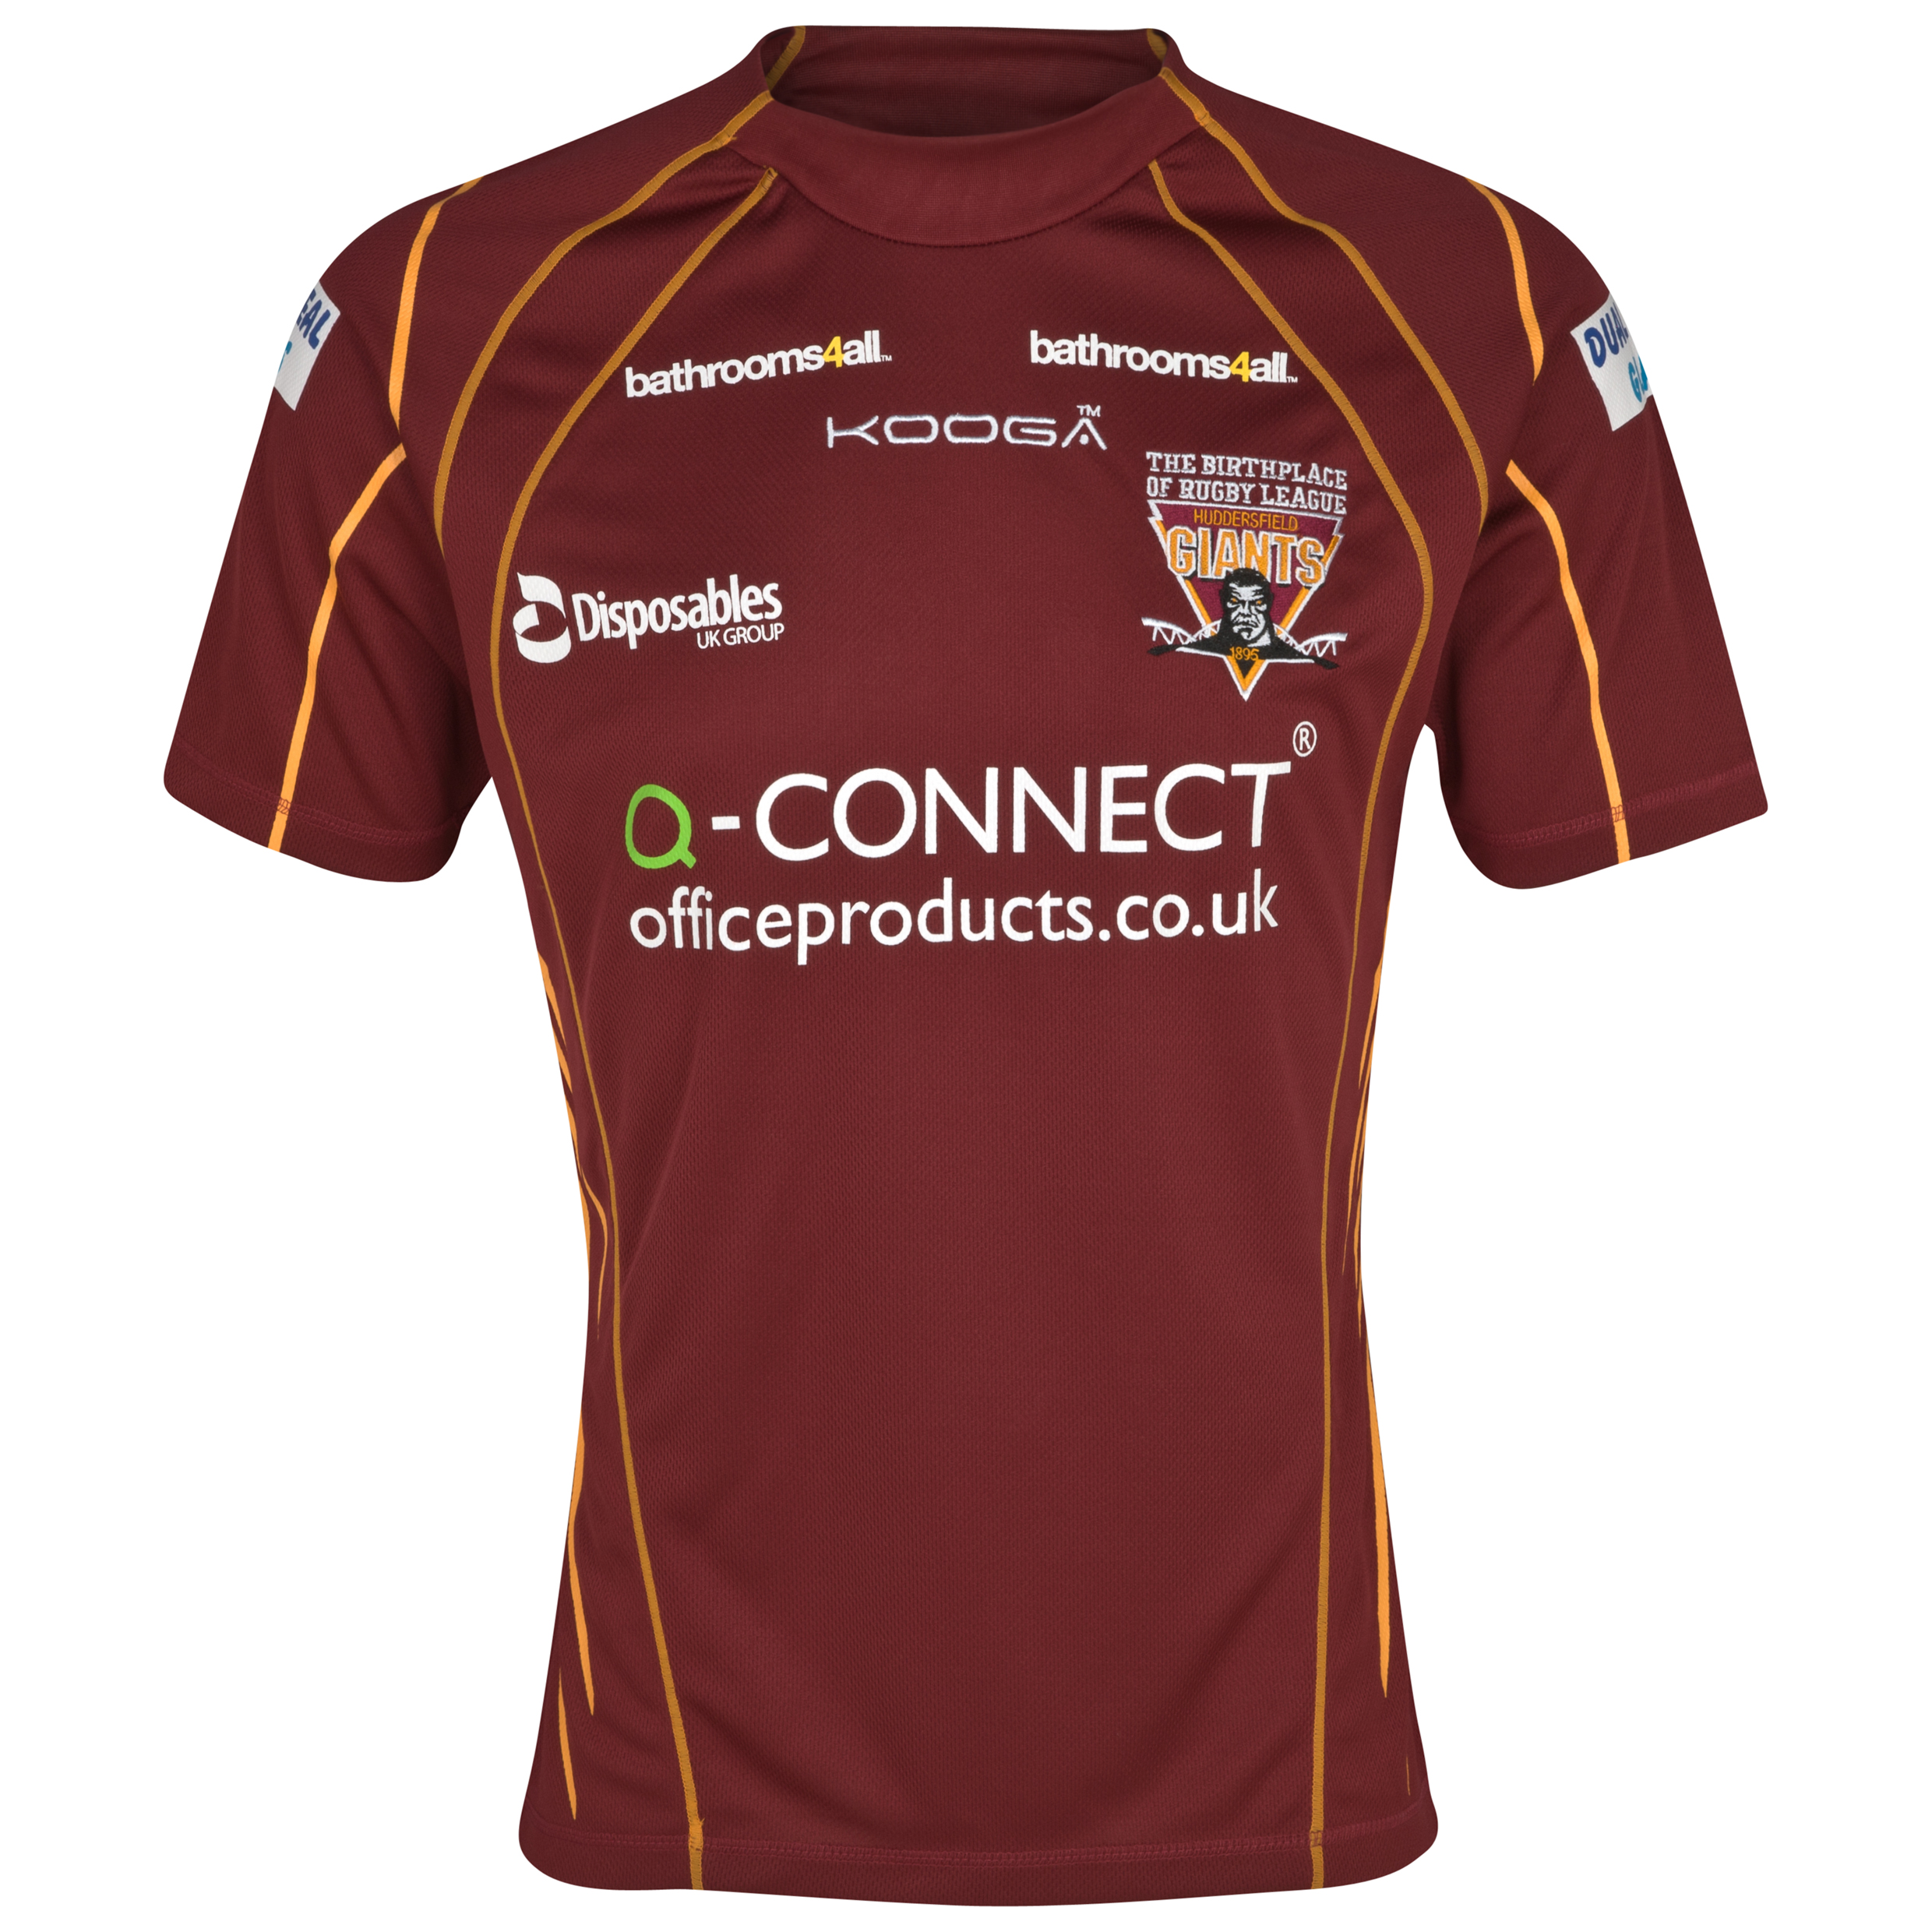 Huddersfield Giants Home Shirt 2012/13